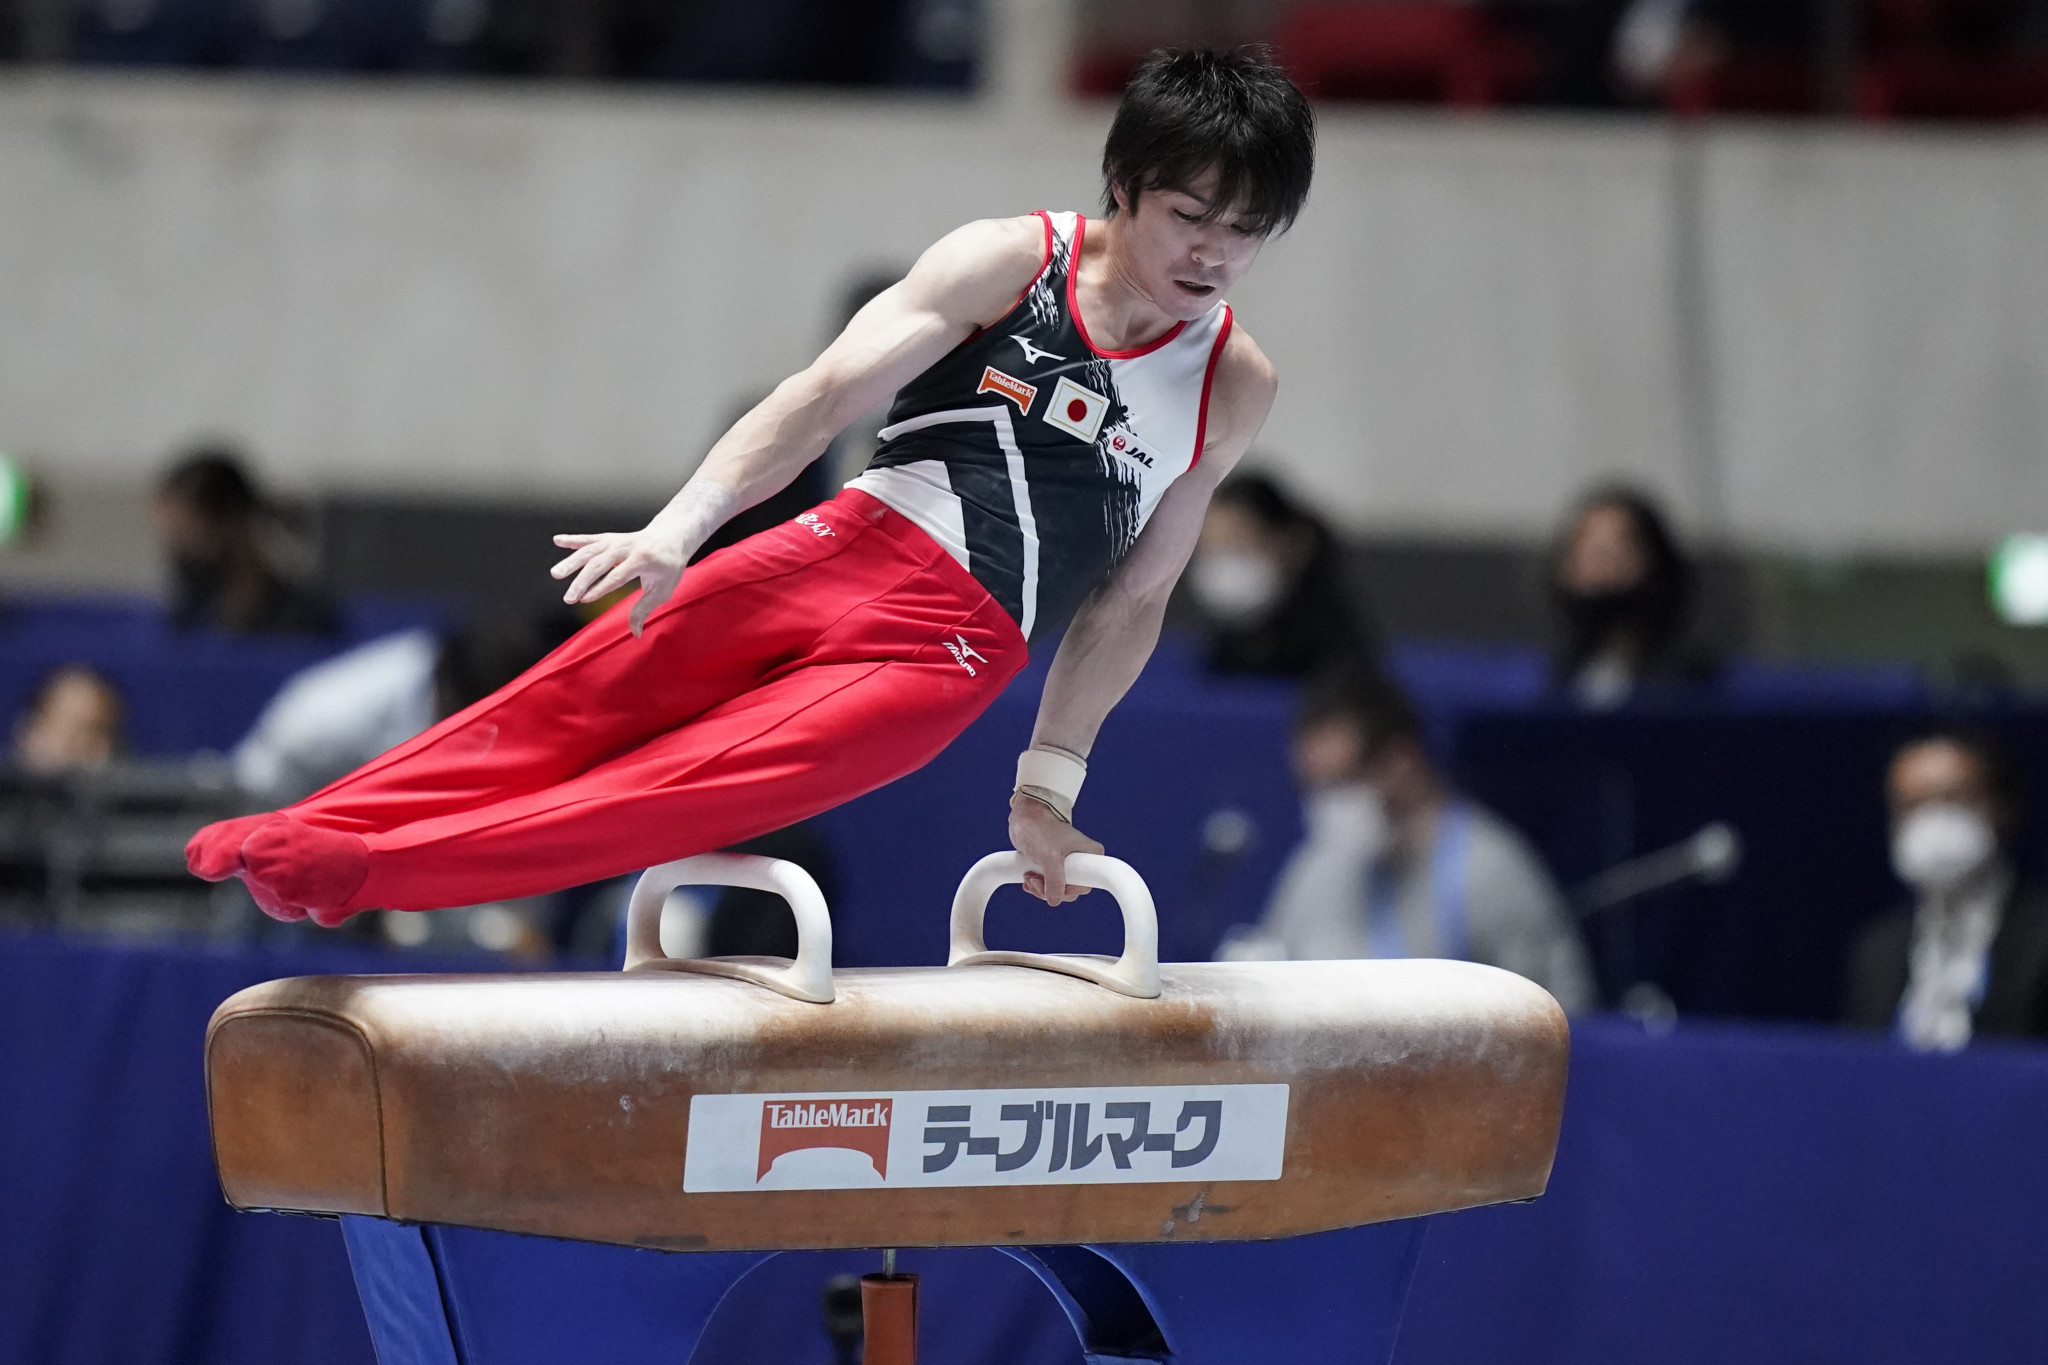 Team Solidarity win gymnastics event considered to be Tokyo 2020 dress rehearsal